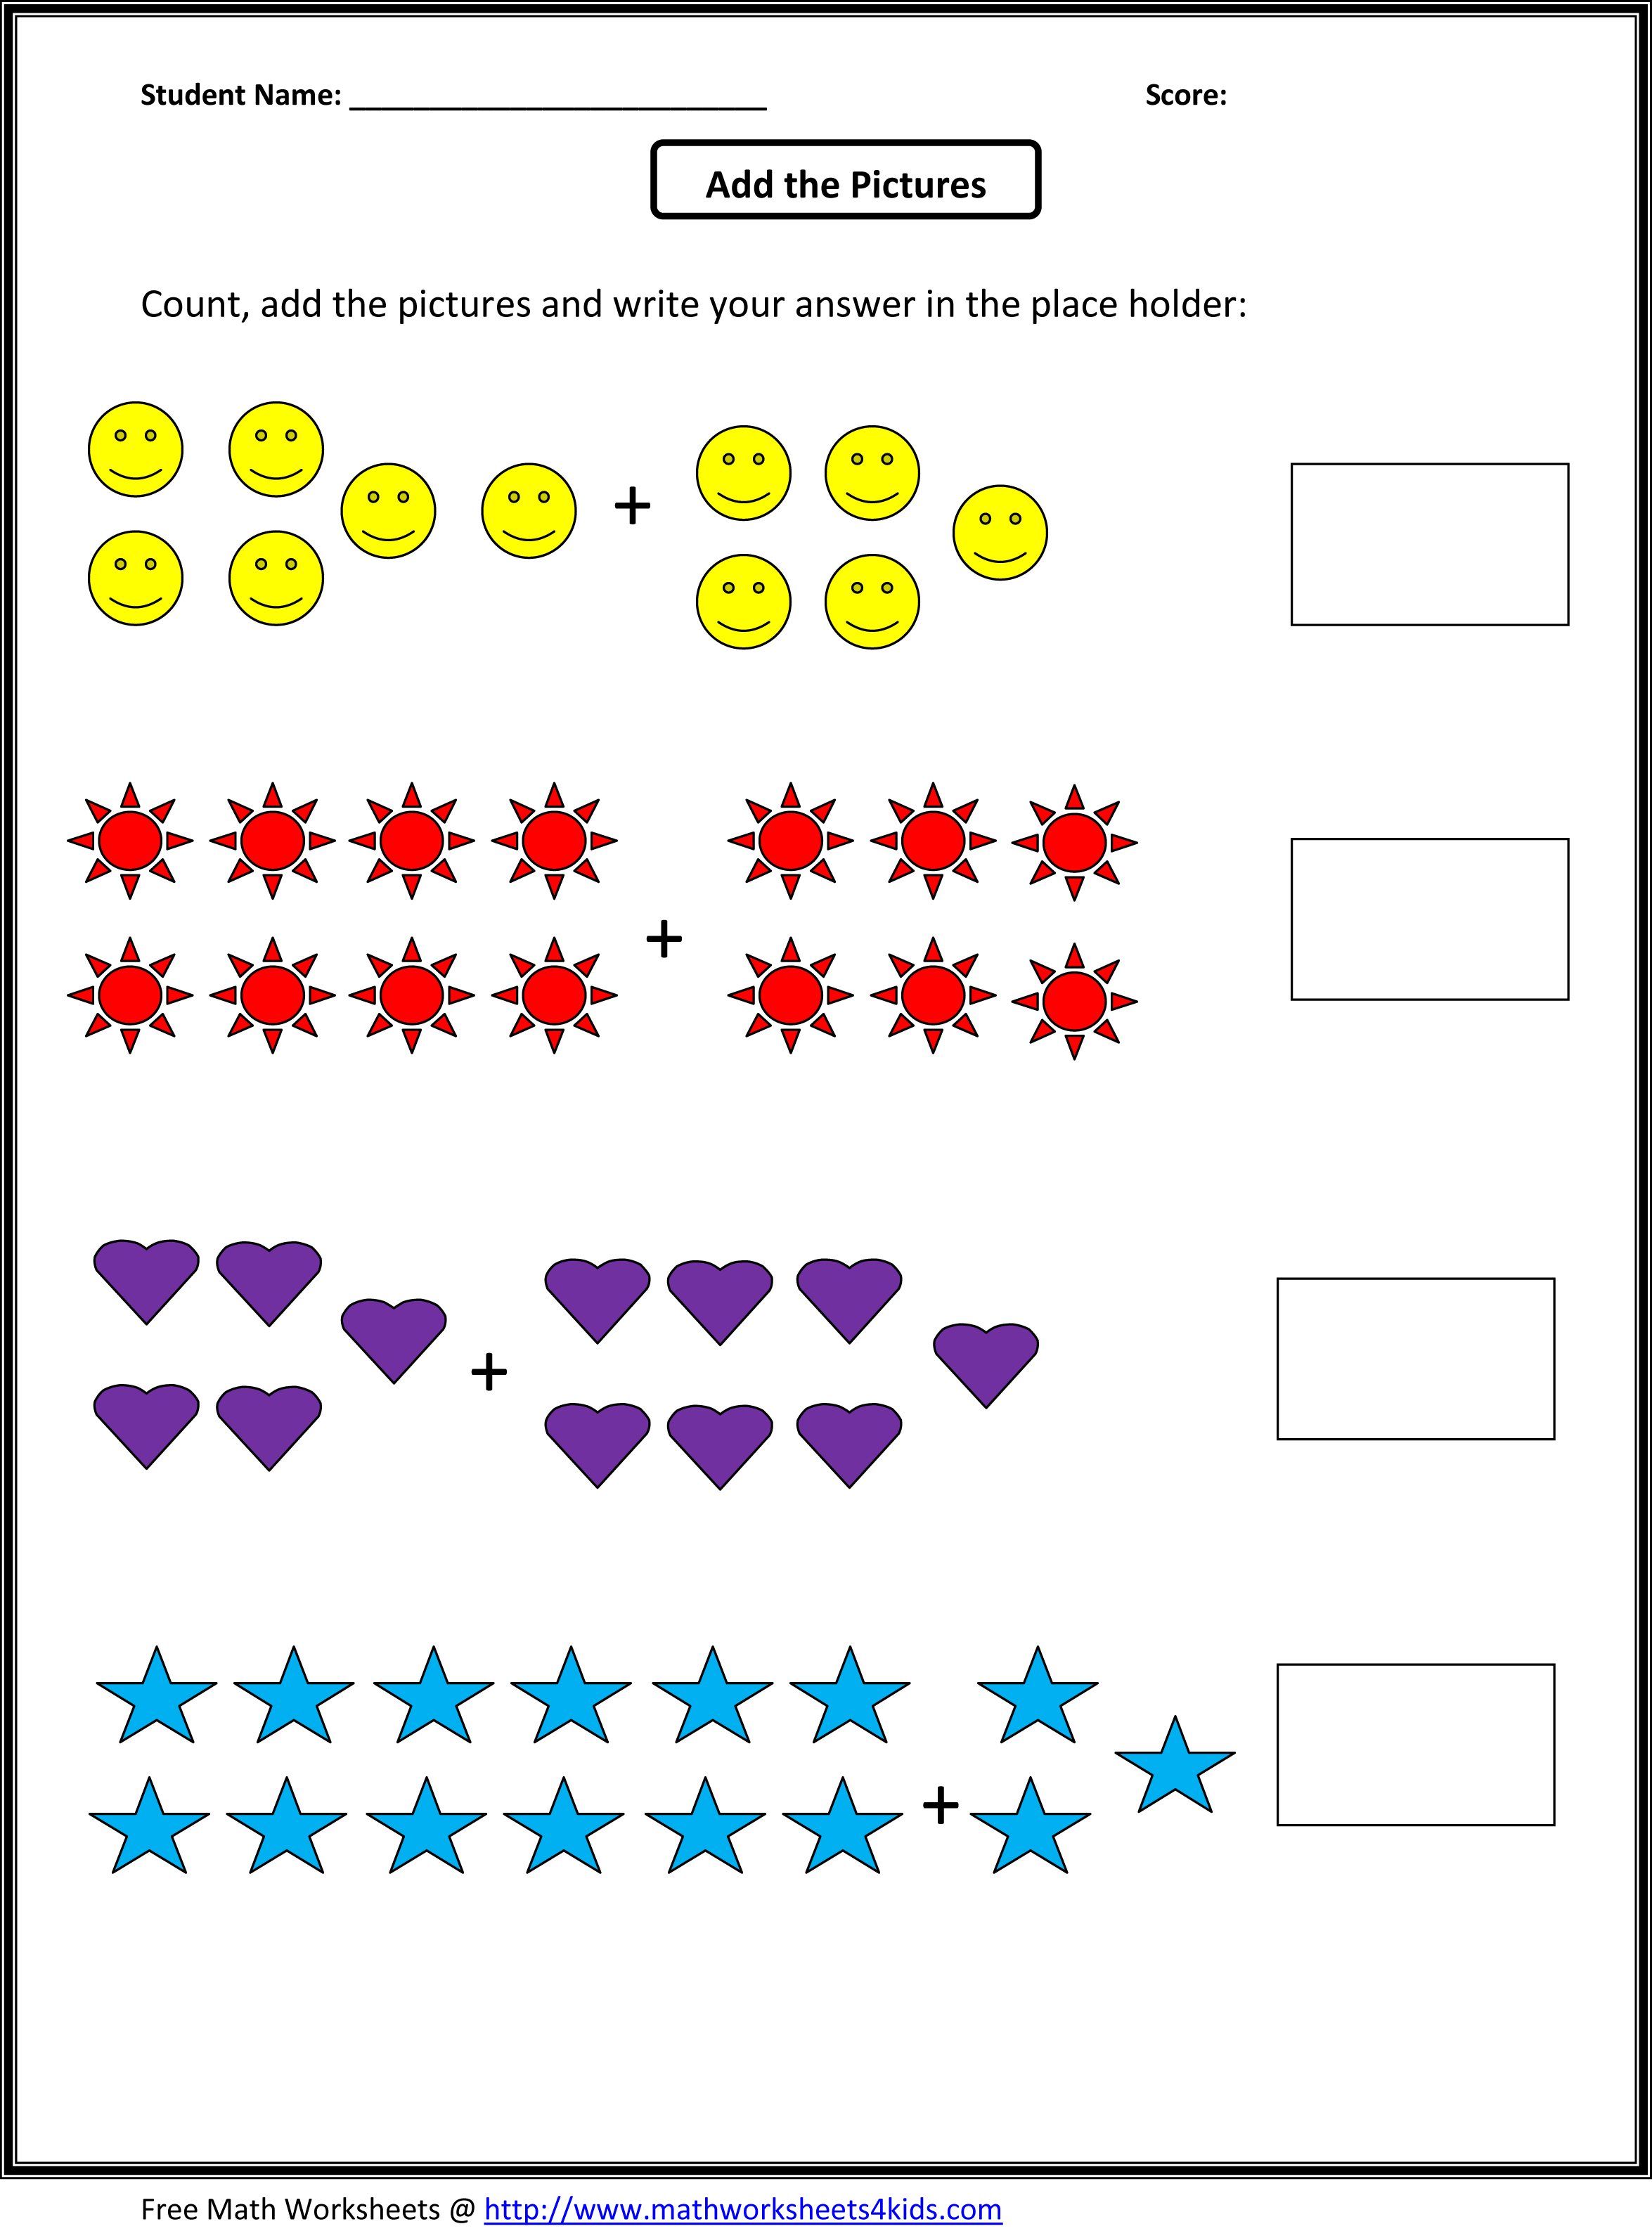 Weirdmailus  Personable Grade  Maths Worksheet  Reocurent With Exciting Math Worksheets For St Grade Free  Reocurent With Appealing Science  Worksheets Also Lattice Multiplication With Decimals Worksheets In Addition Worksheet For Verbs And Math Multiplication Worksheet Generator As Well As Worksheet On Long Division Additionally Nominative And Objective Pronouns Worksheet From Reocurentcom With Weirdmailus  Exciting Grade  Maths Worksheet  Reocurent With Appealing Math Worksheets For St Grade Free  Reocurent And Personable Science  Worksheets Also Lattice Multiplication With Decimals Worksheets In Addition Worksheet For Verbs From Reocurentcom